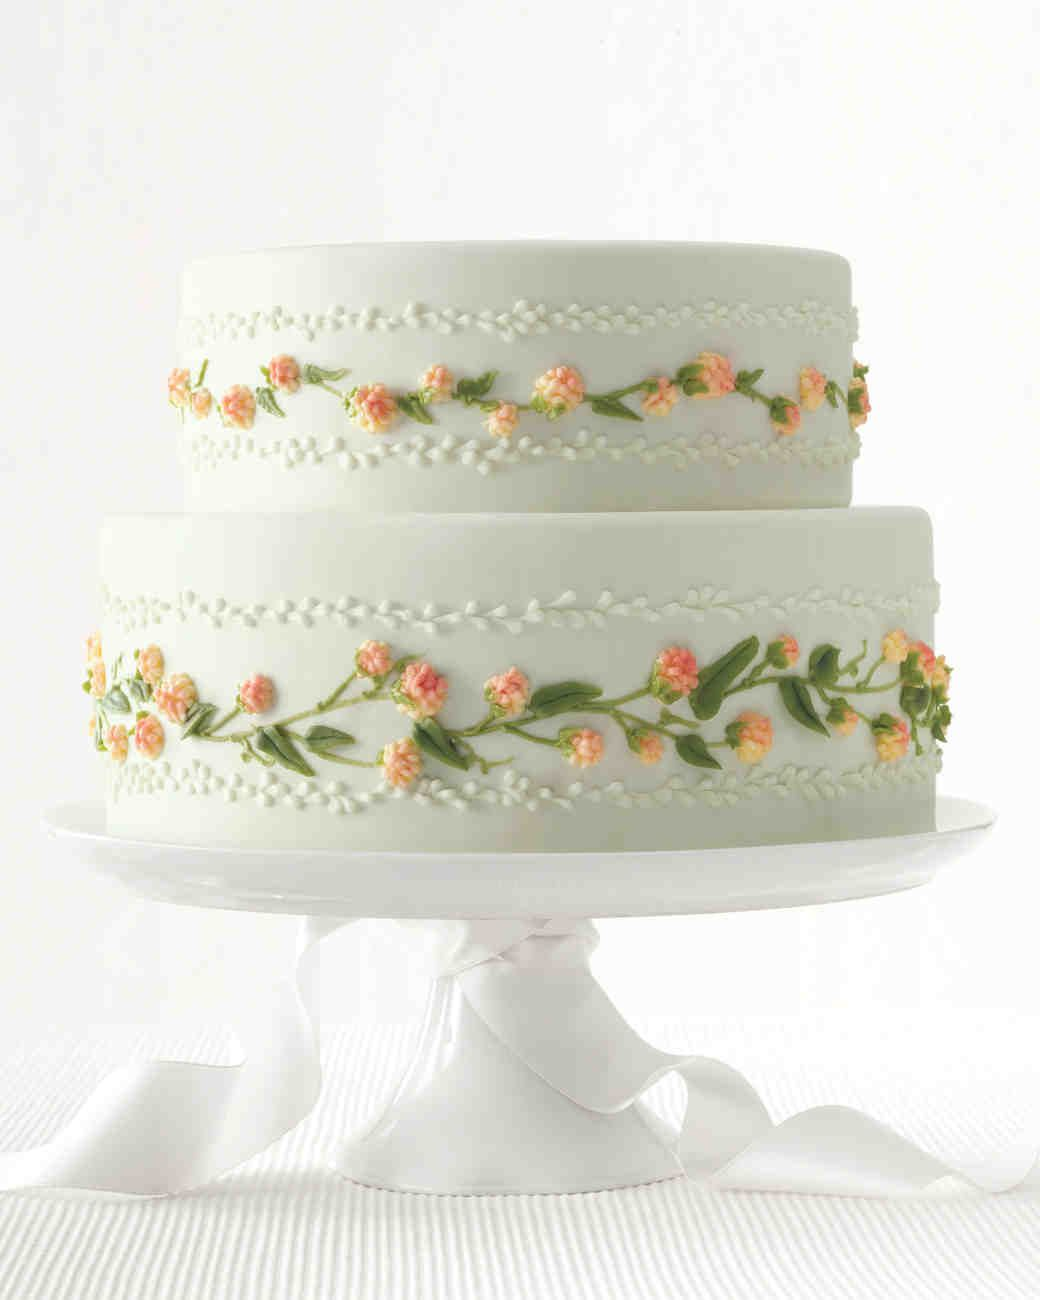 Almond-and-hazelnut meringue joins vanilla buttercream laced with ...